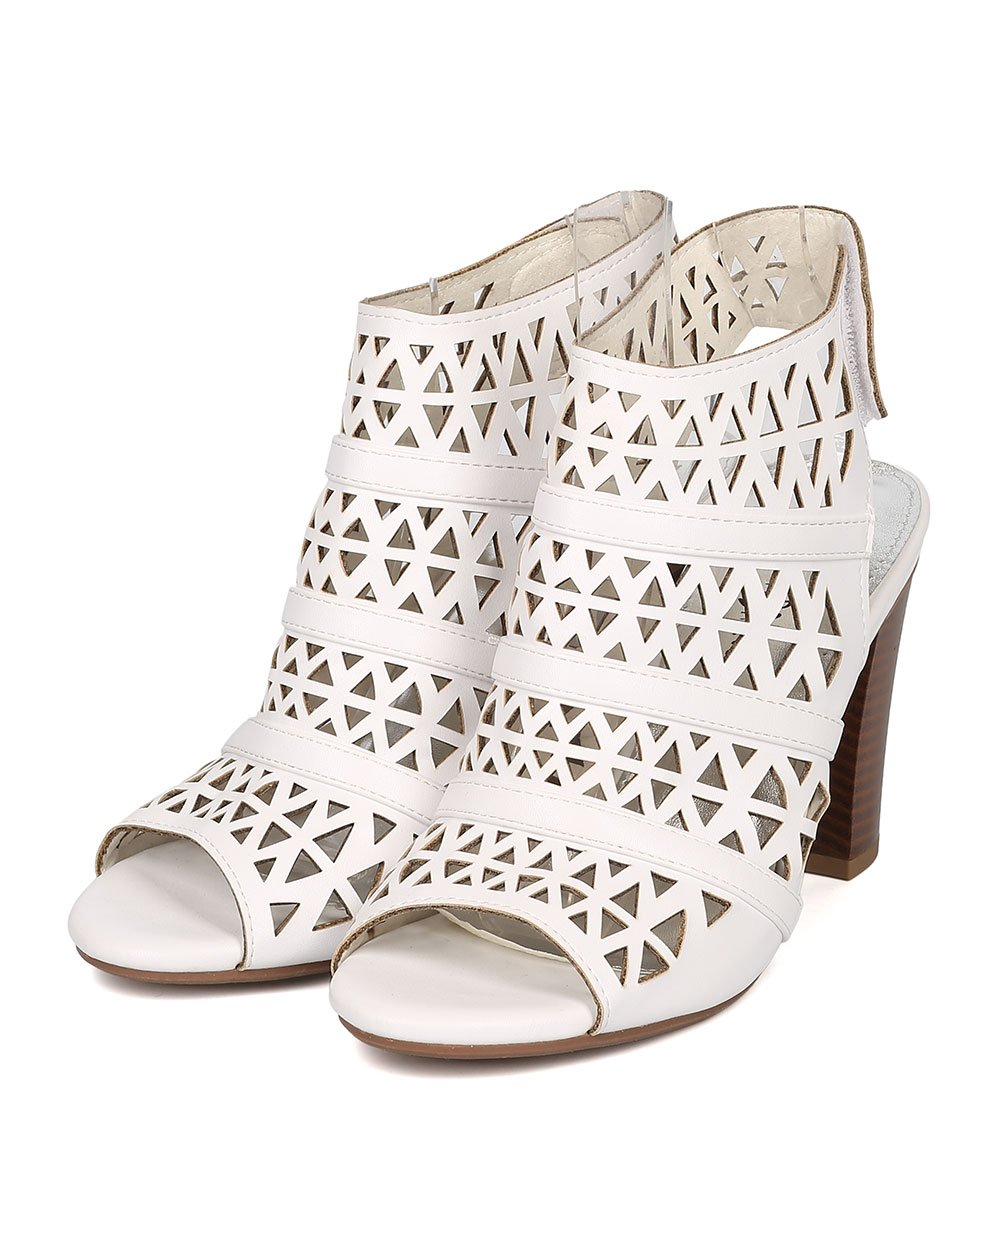 Women Leatherette Peep Toe Perforated Chunky Heel Slingback Mule GG78 - White (Size: 6.5) by Nature Breeze (Image #5)